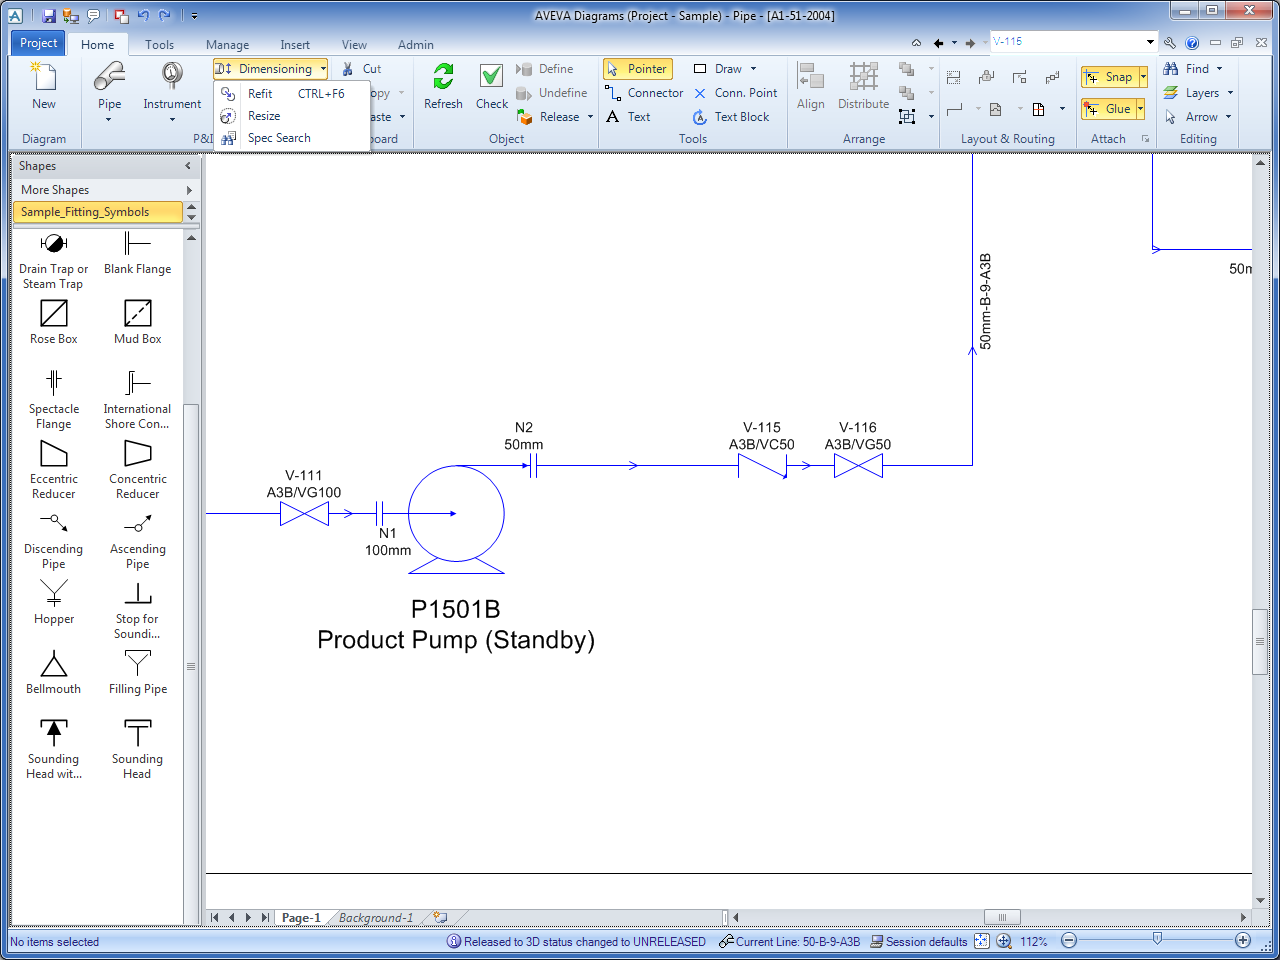 Catalogue Manager - AVEVA Diagrams 14.1 - Cataloug